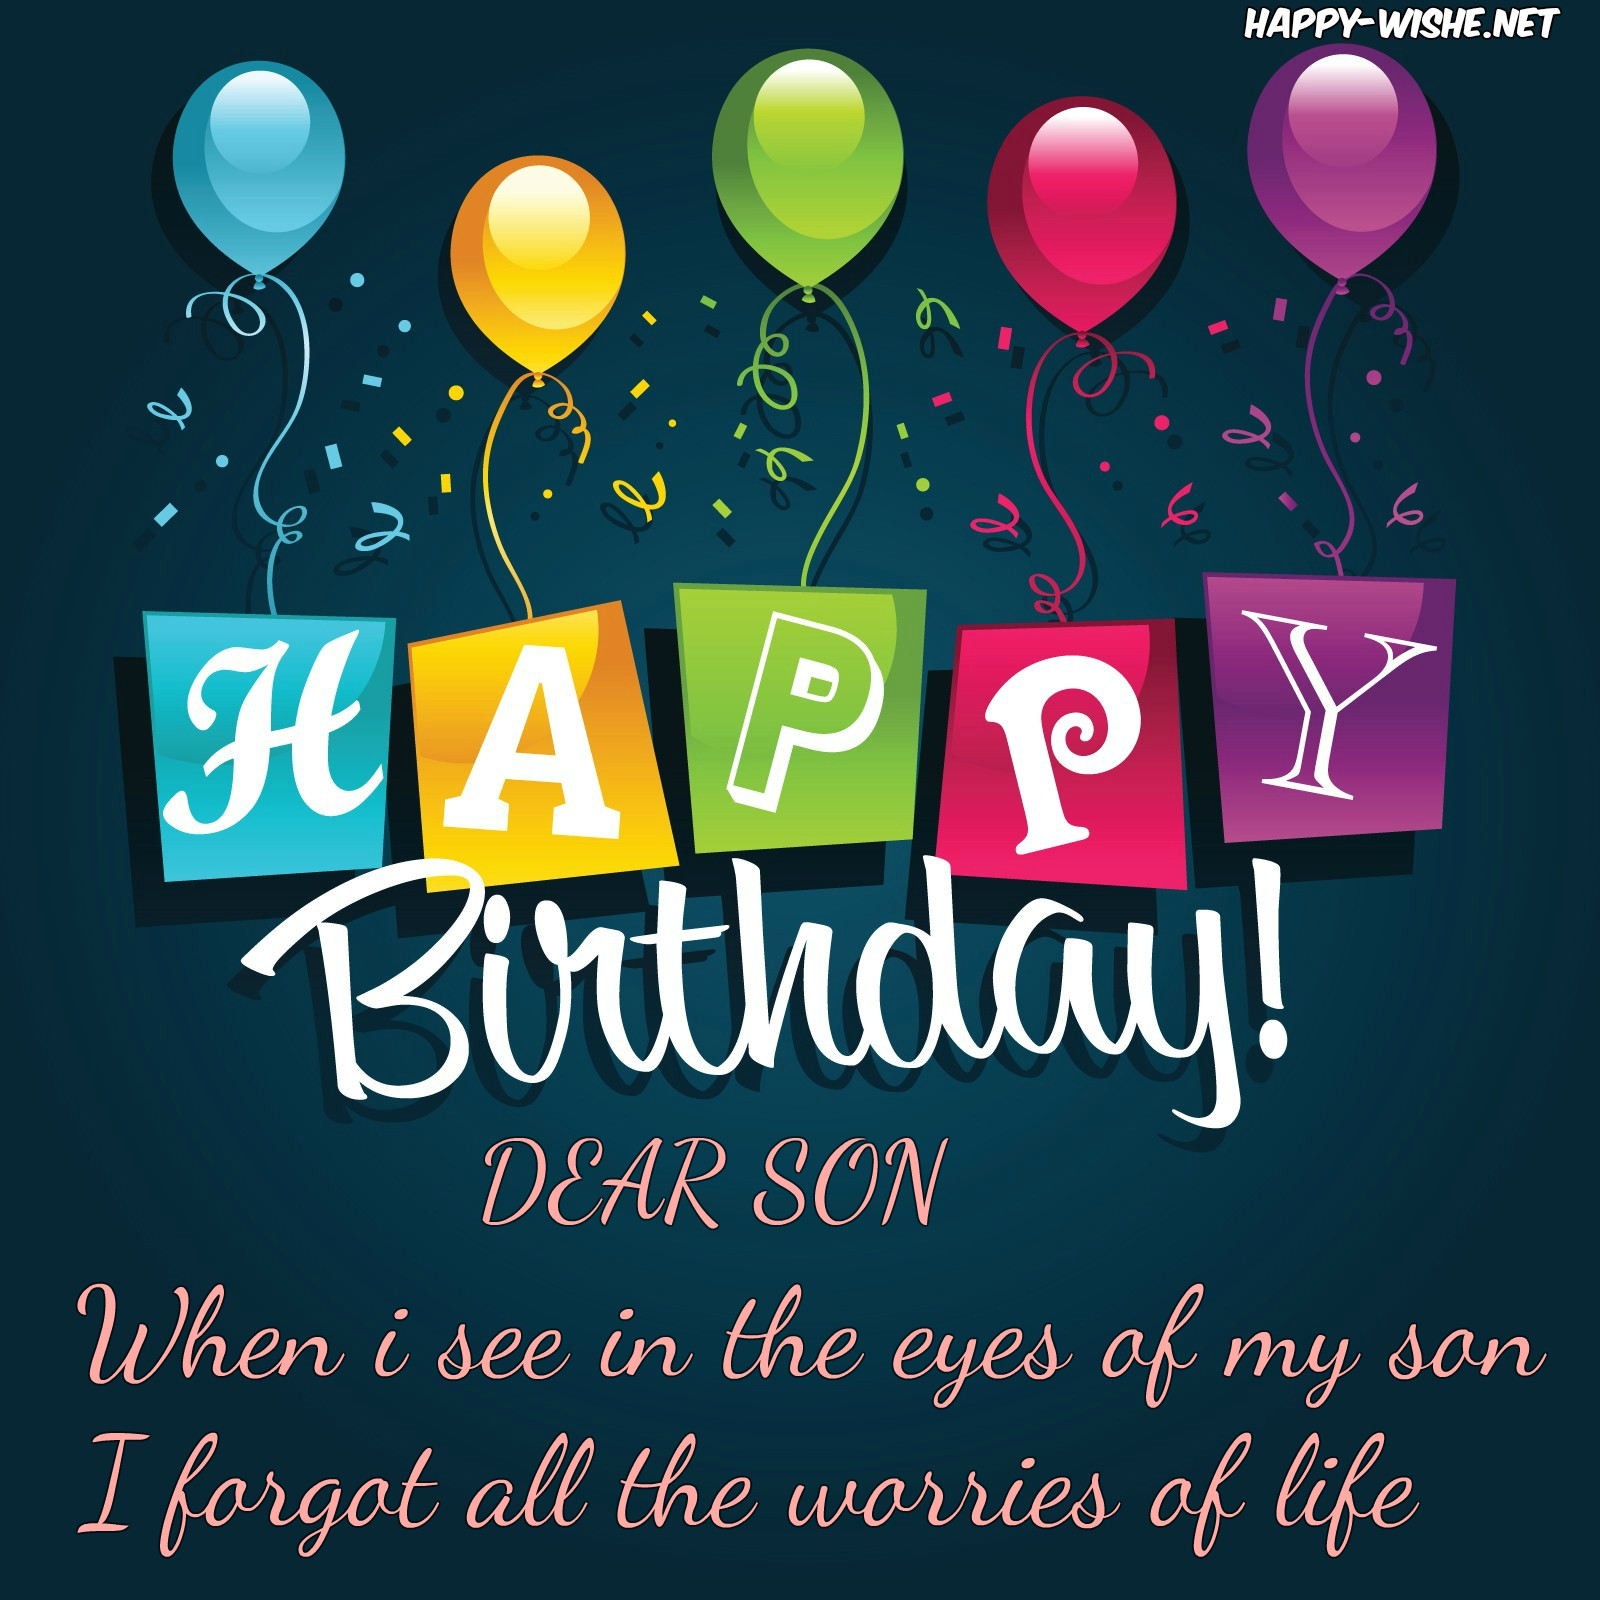 Pleasant Happy Birthday Wishes For Son Quotes Messages Funny Birthday Cards Online Alyptdamsfinfo